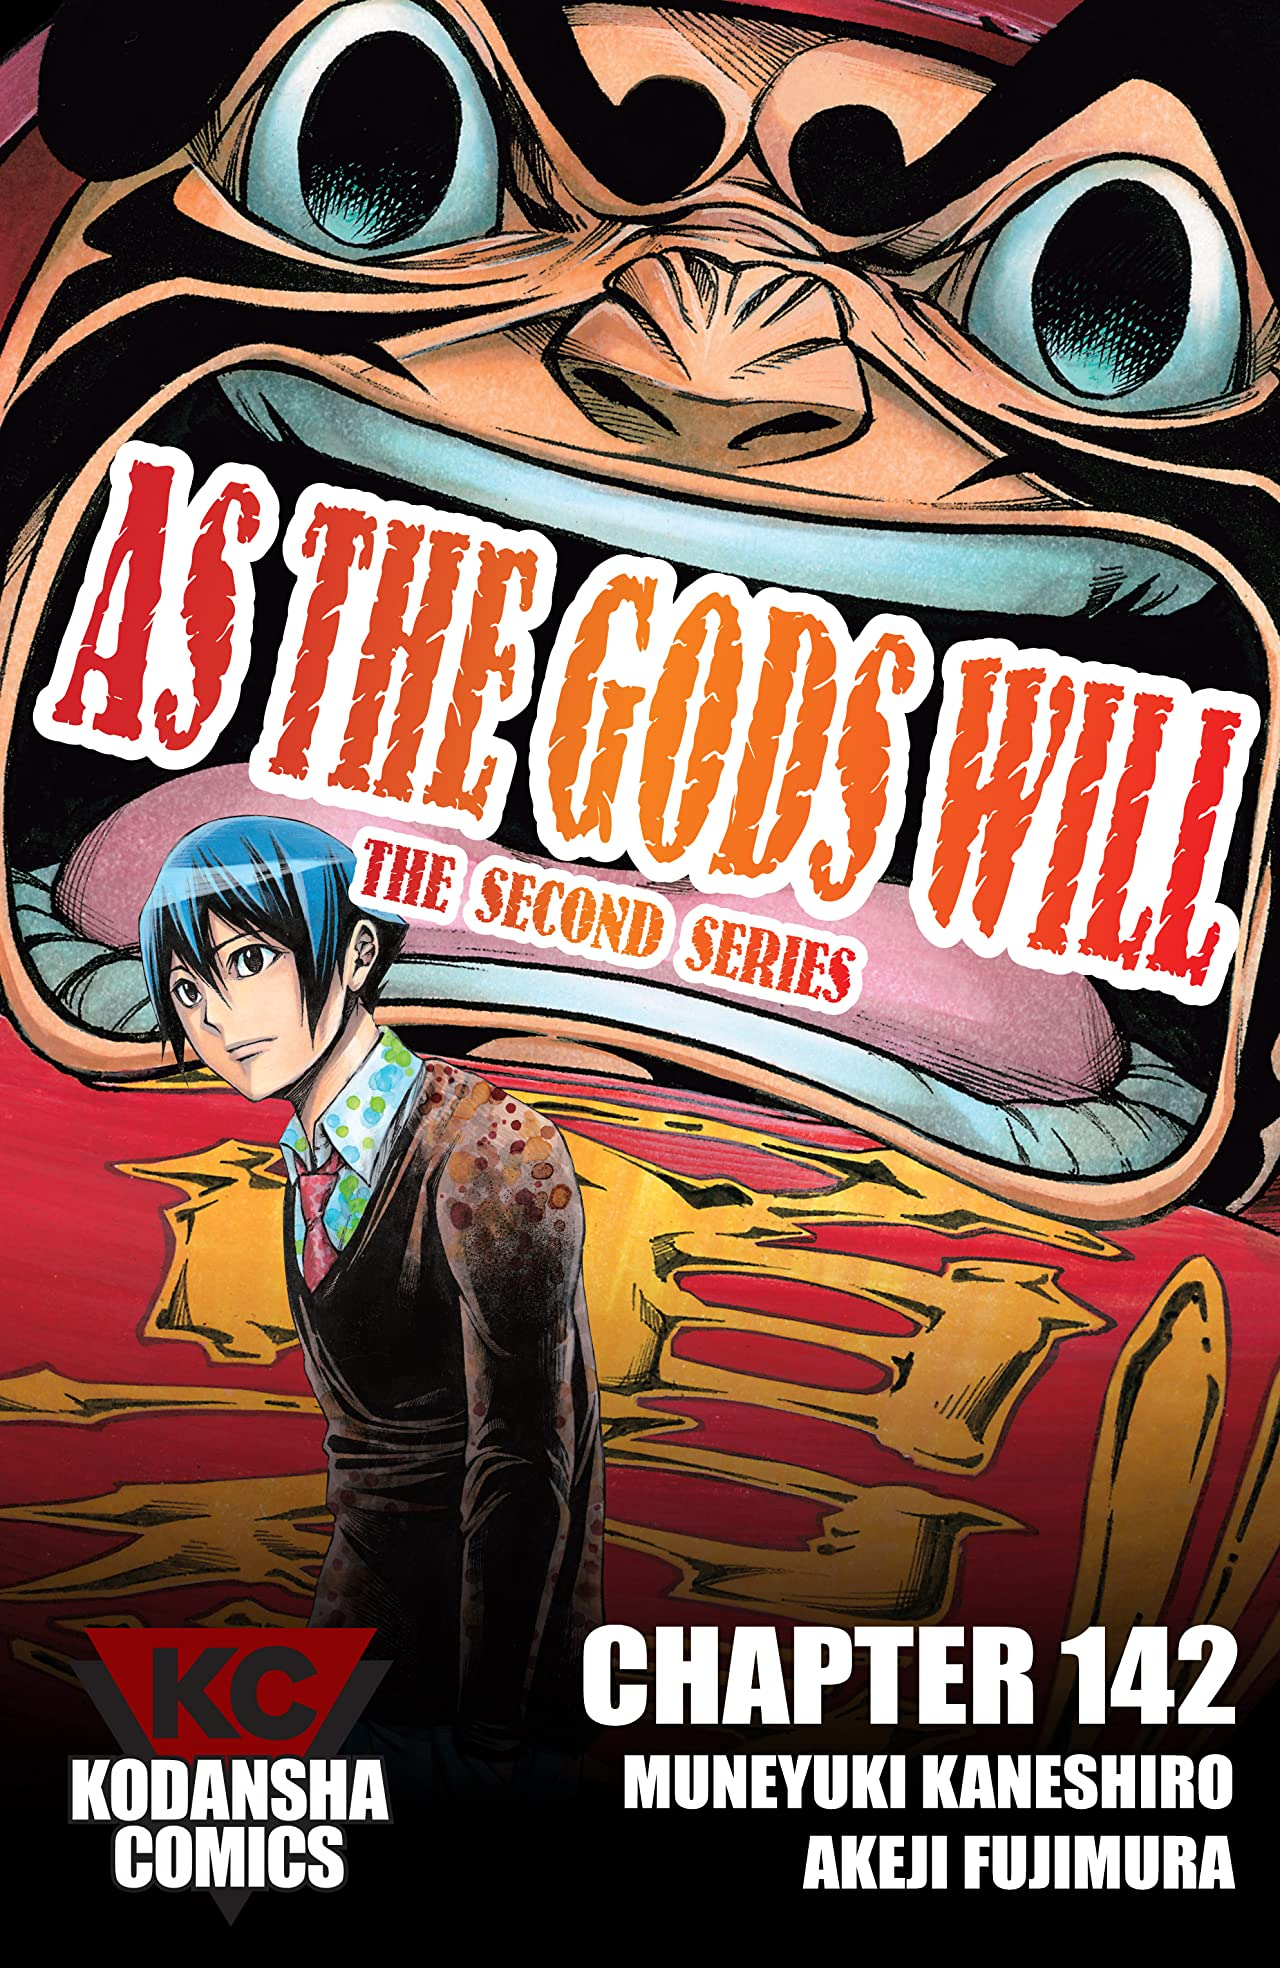 As The Gods Will: The Second Series #142